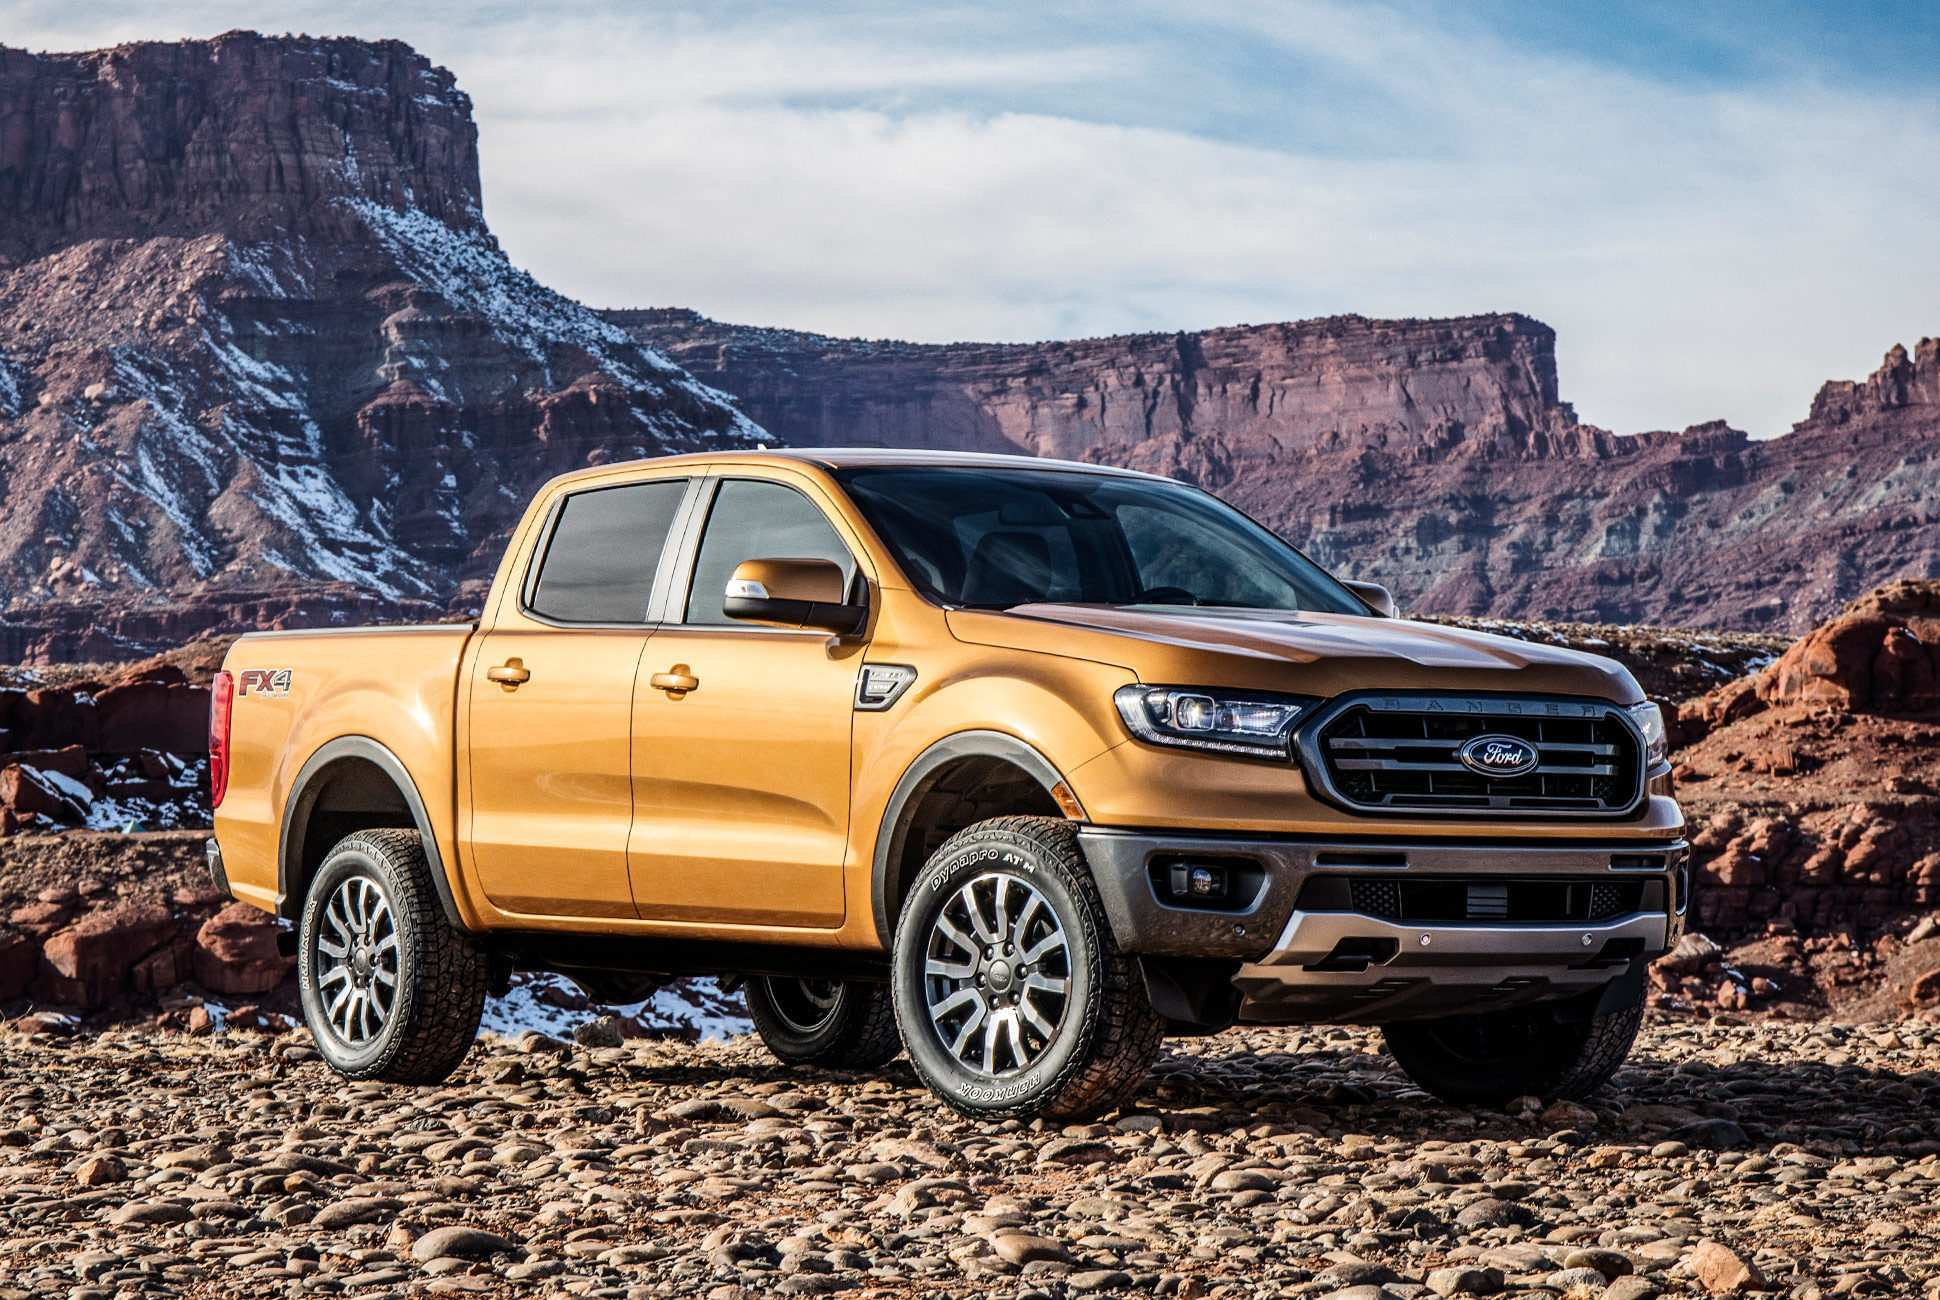 42 The Best 2020 Ford Ranger Usa Concept And Review